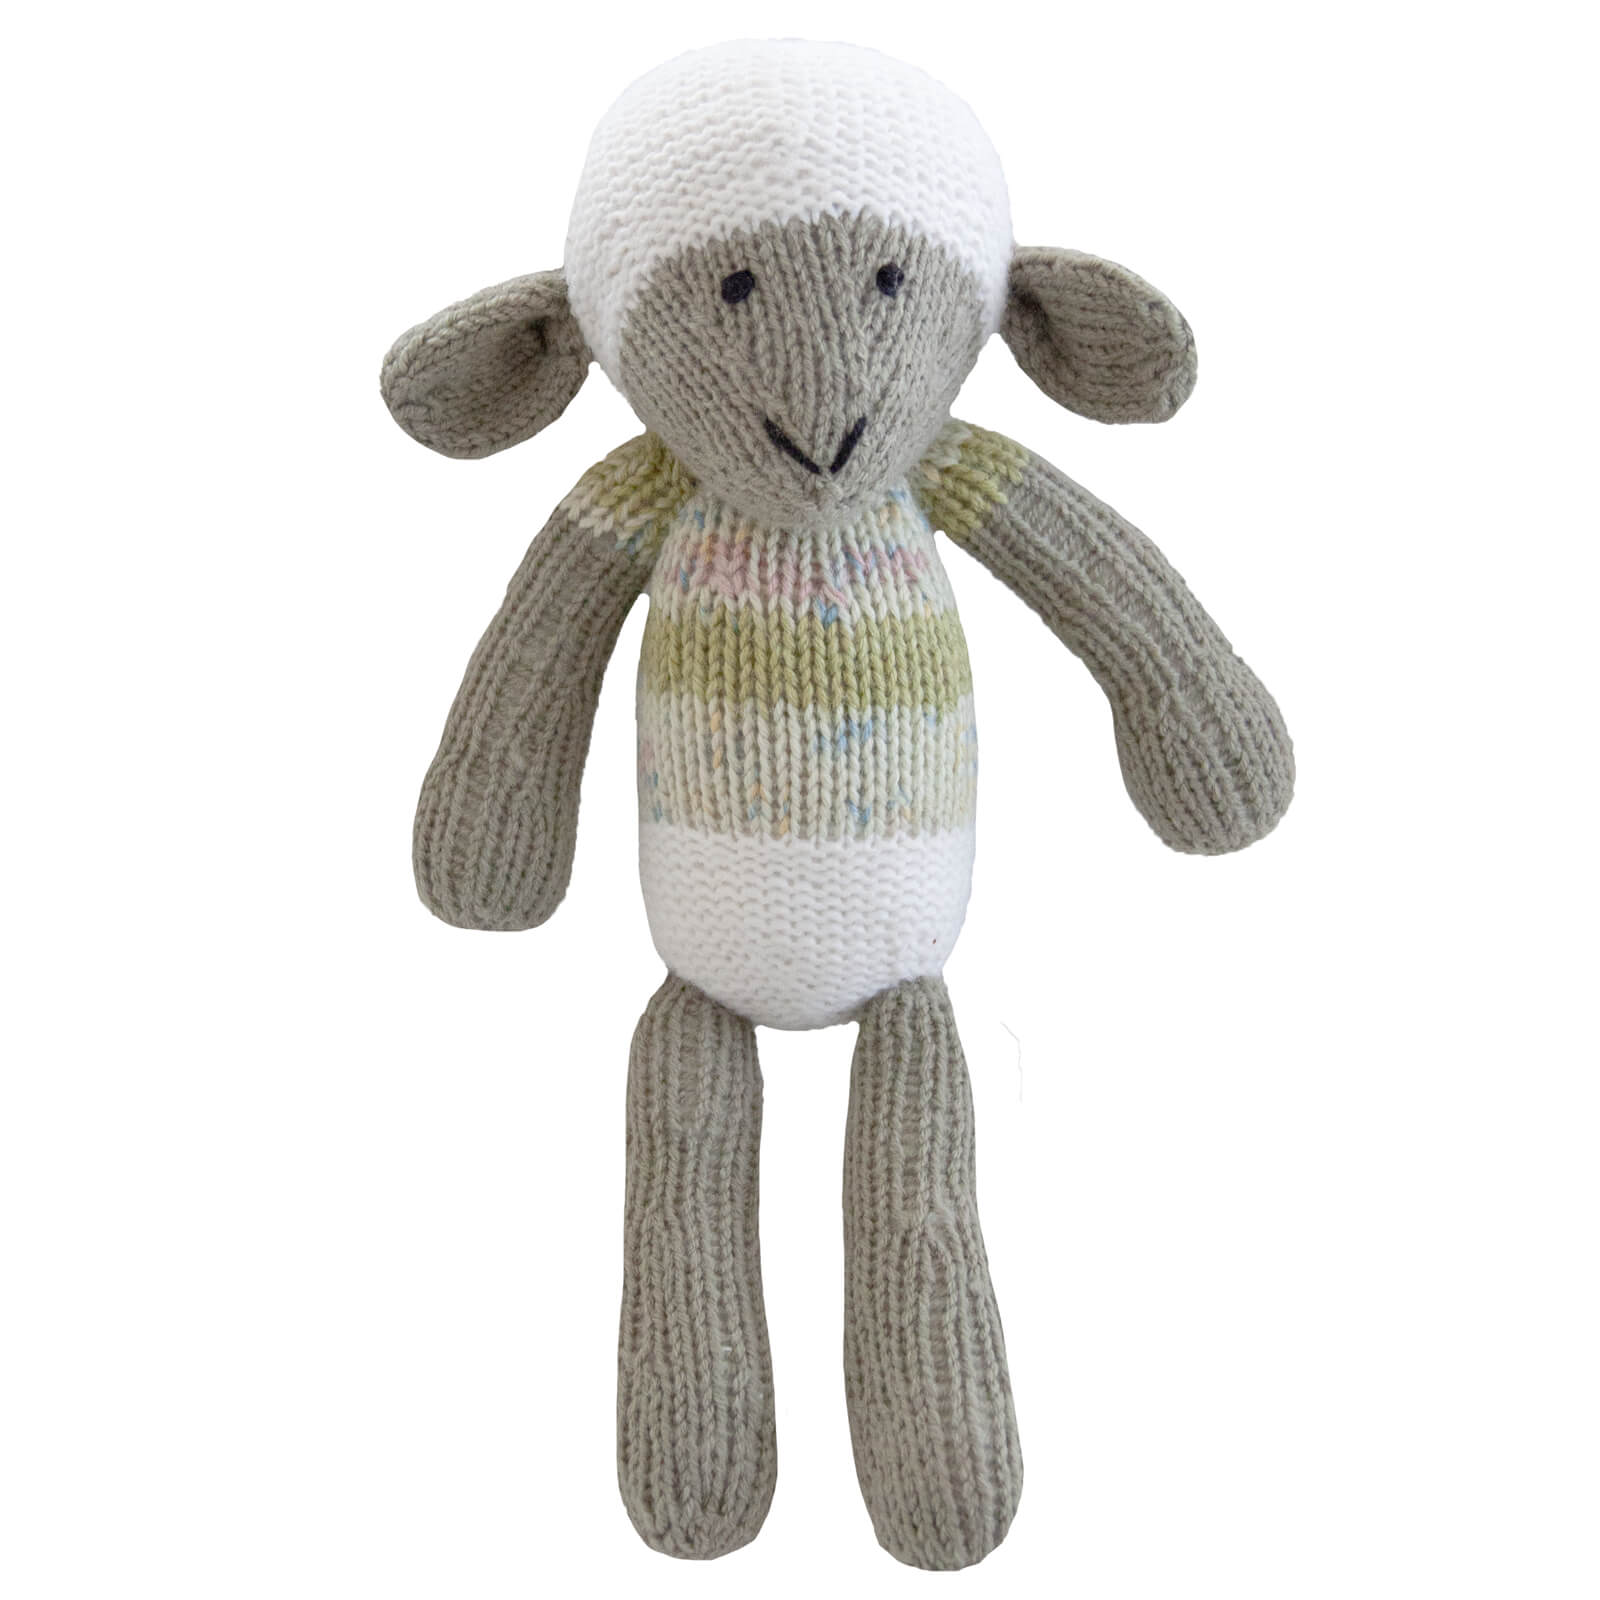 Knitted Lamb Heirloom Toy - Hwai